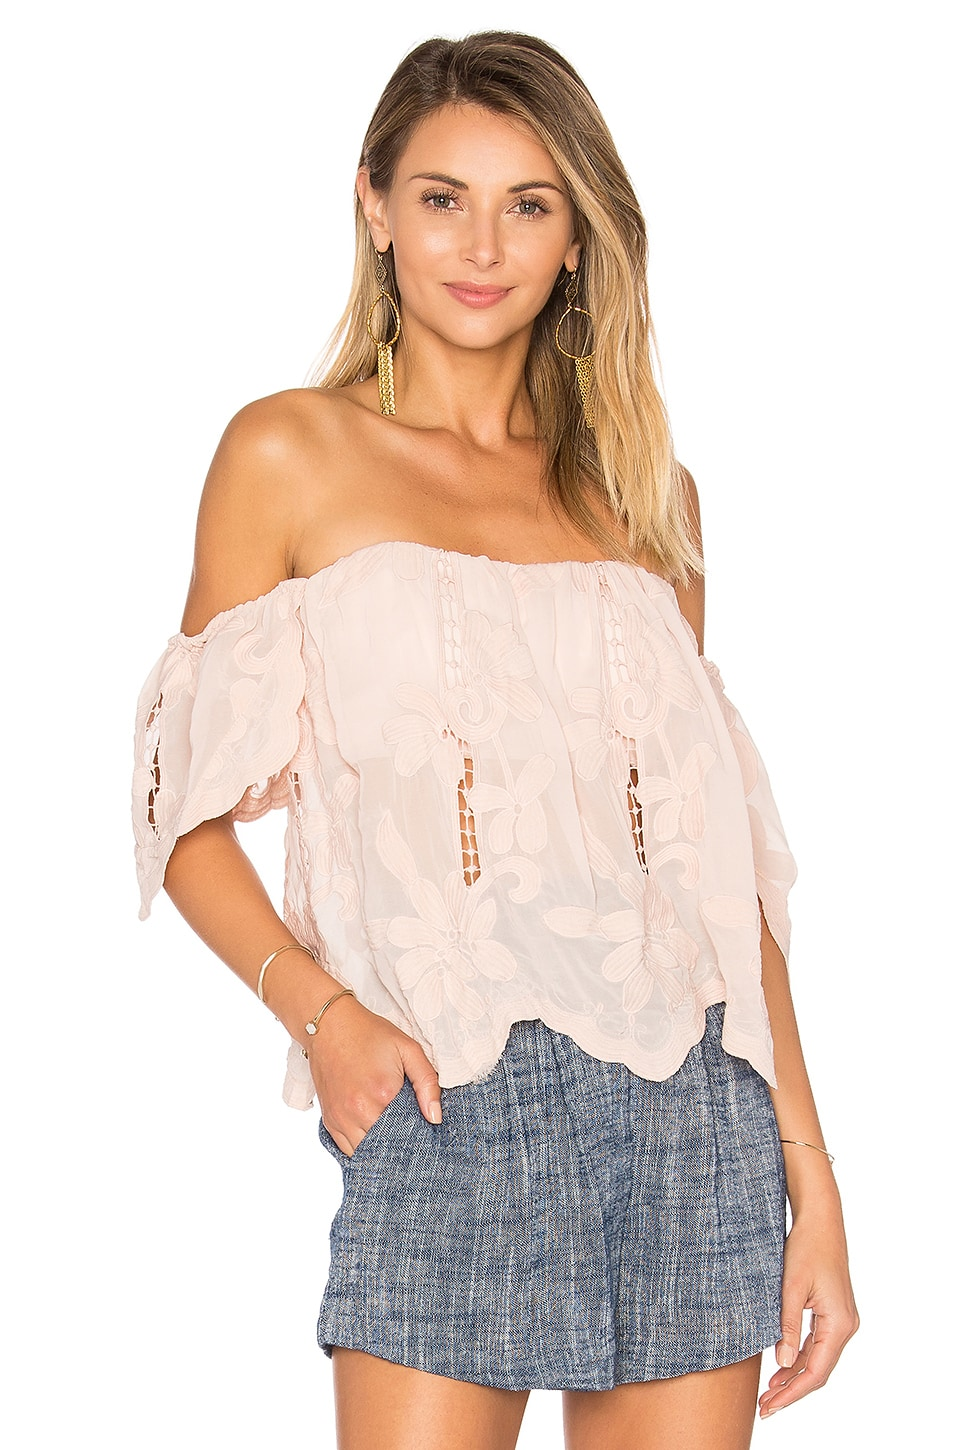 Lovers + Friends Life's A Beach Top in Nude